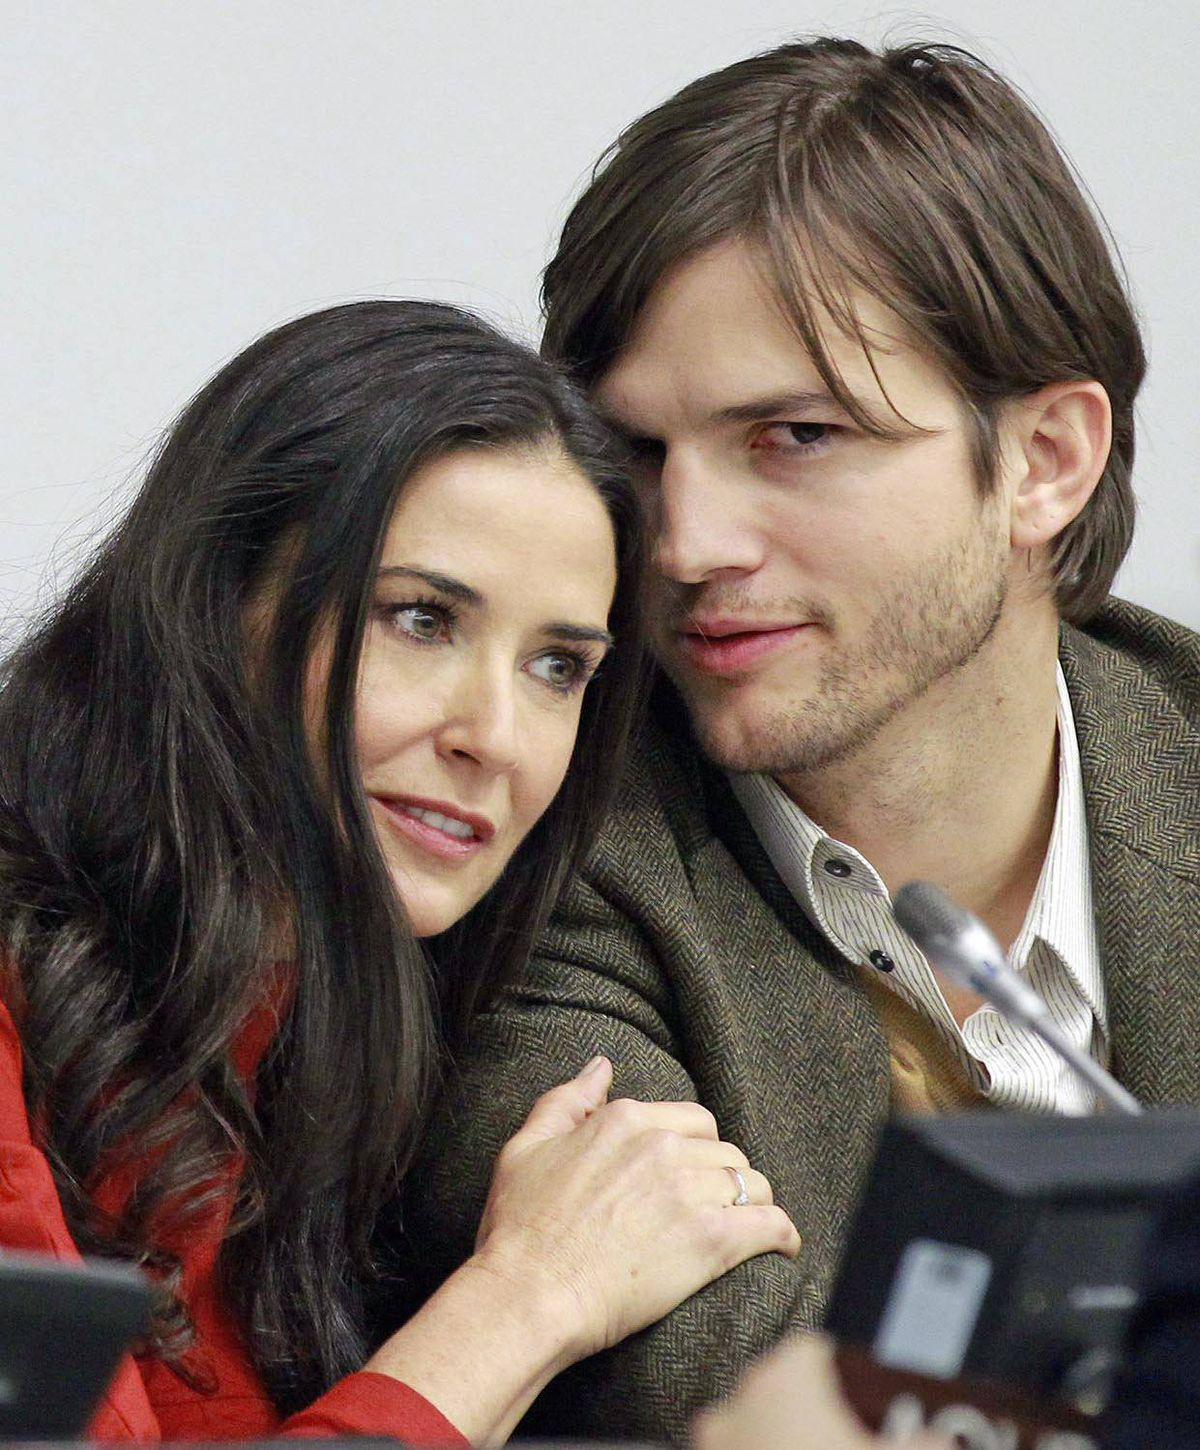 Demi Moore and Ashton Kutcher attend a news conference at the United Nations Headquarters in New York, November 4, 2010.